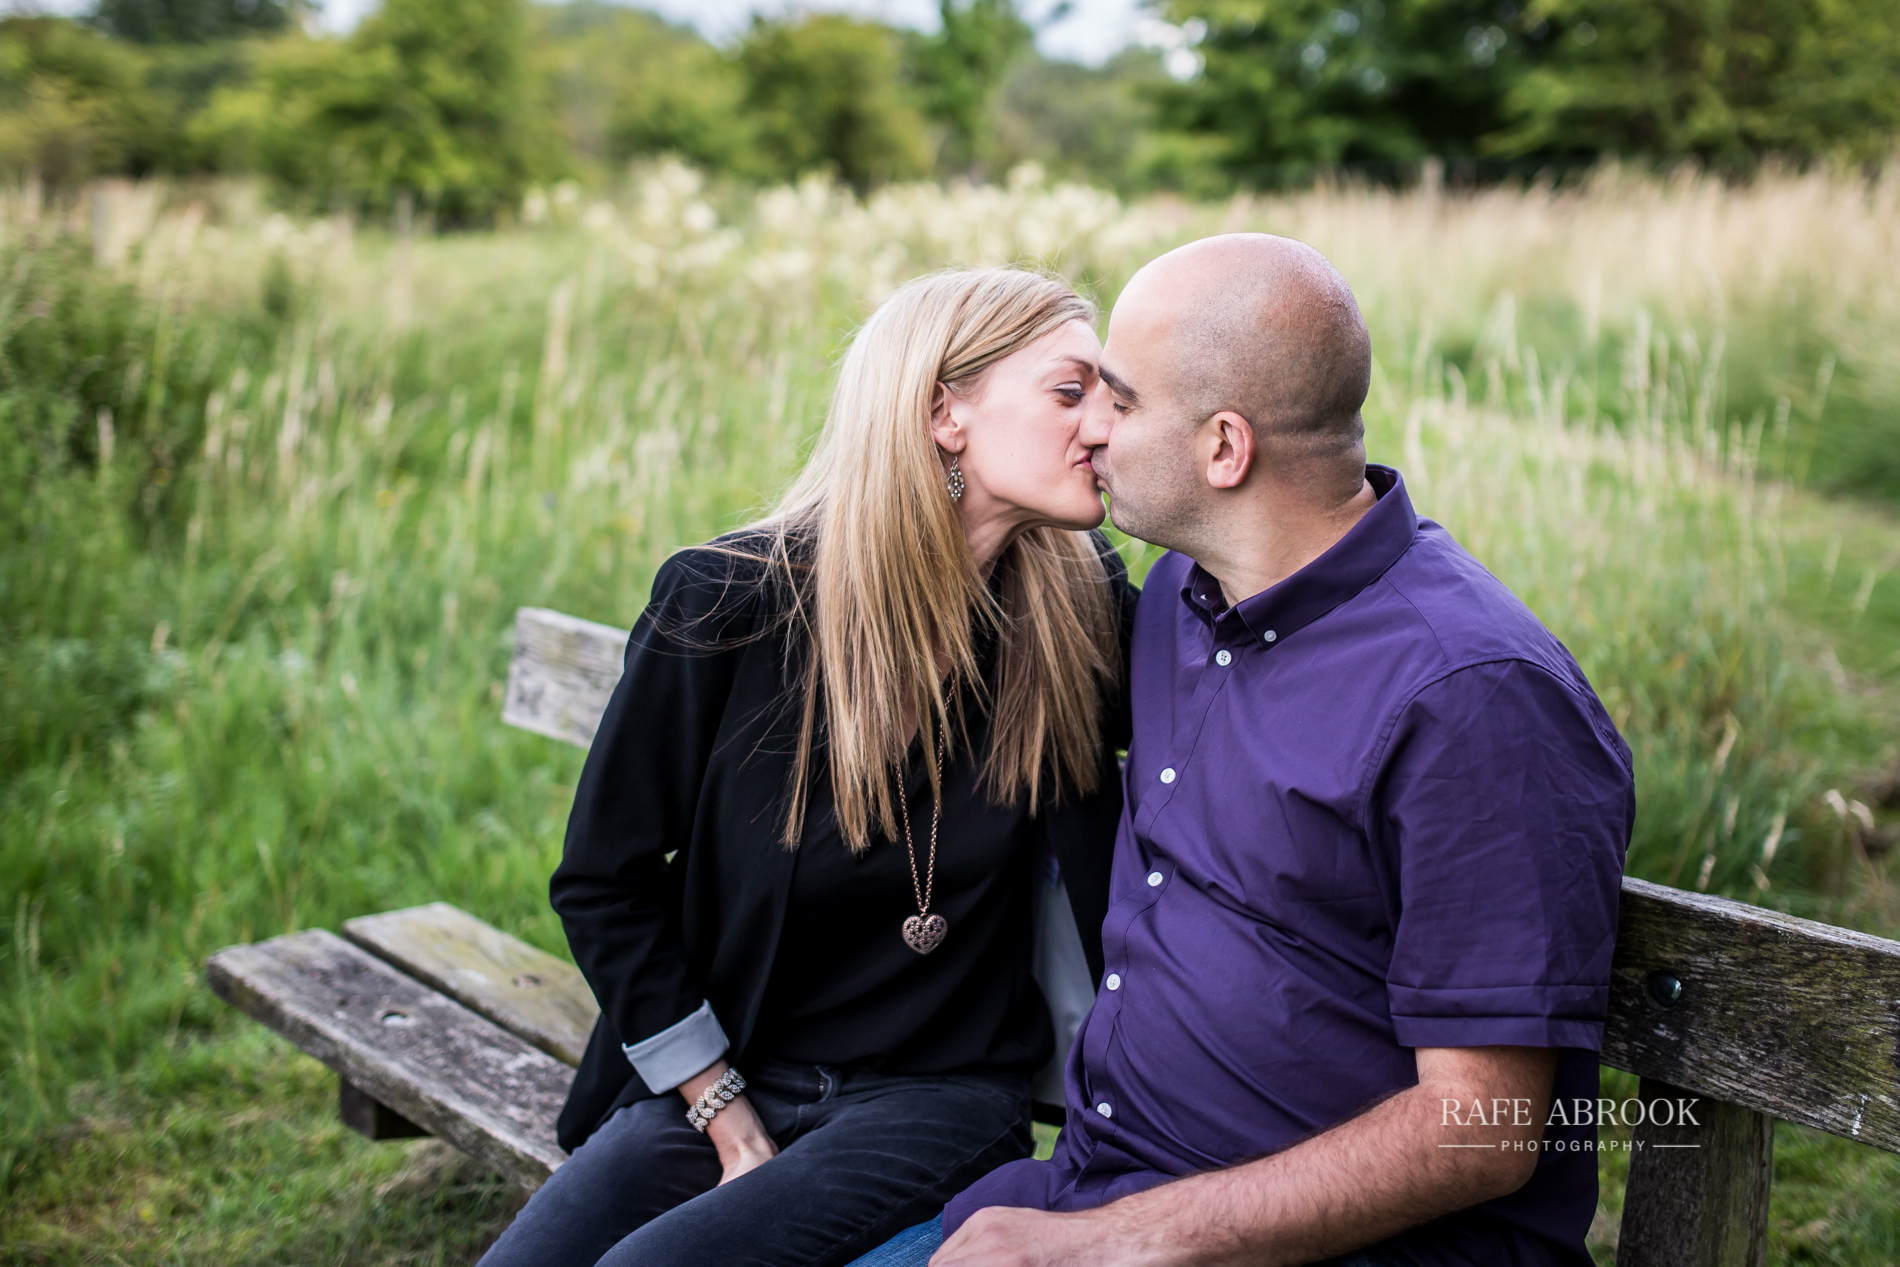 abigail & onur engagement shoot oughtonhead common hitchin hertfordshire-1022.jpg